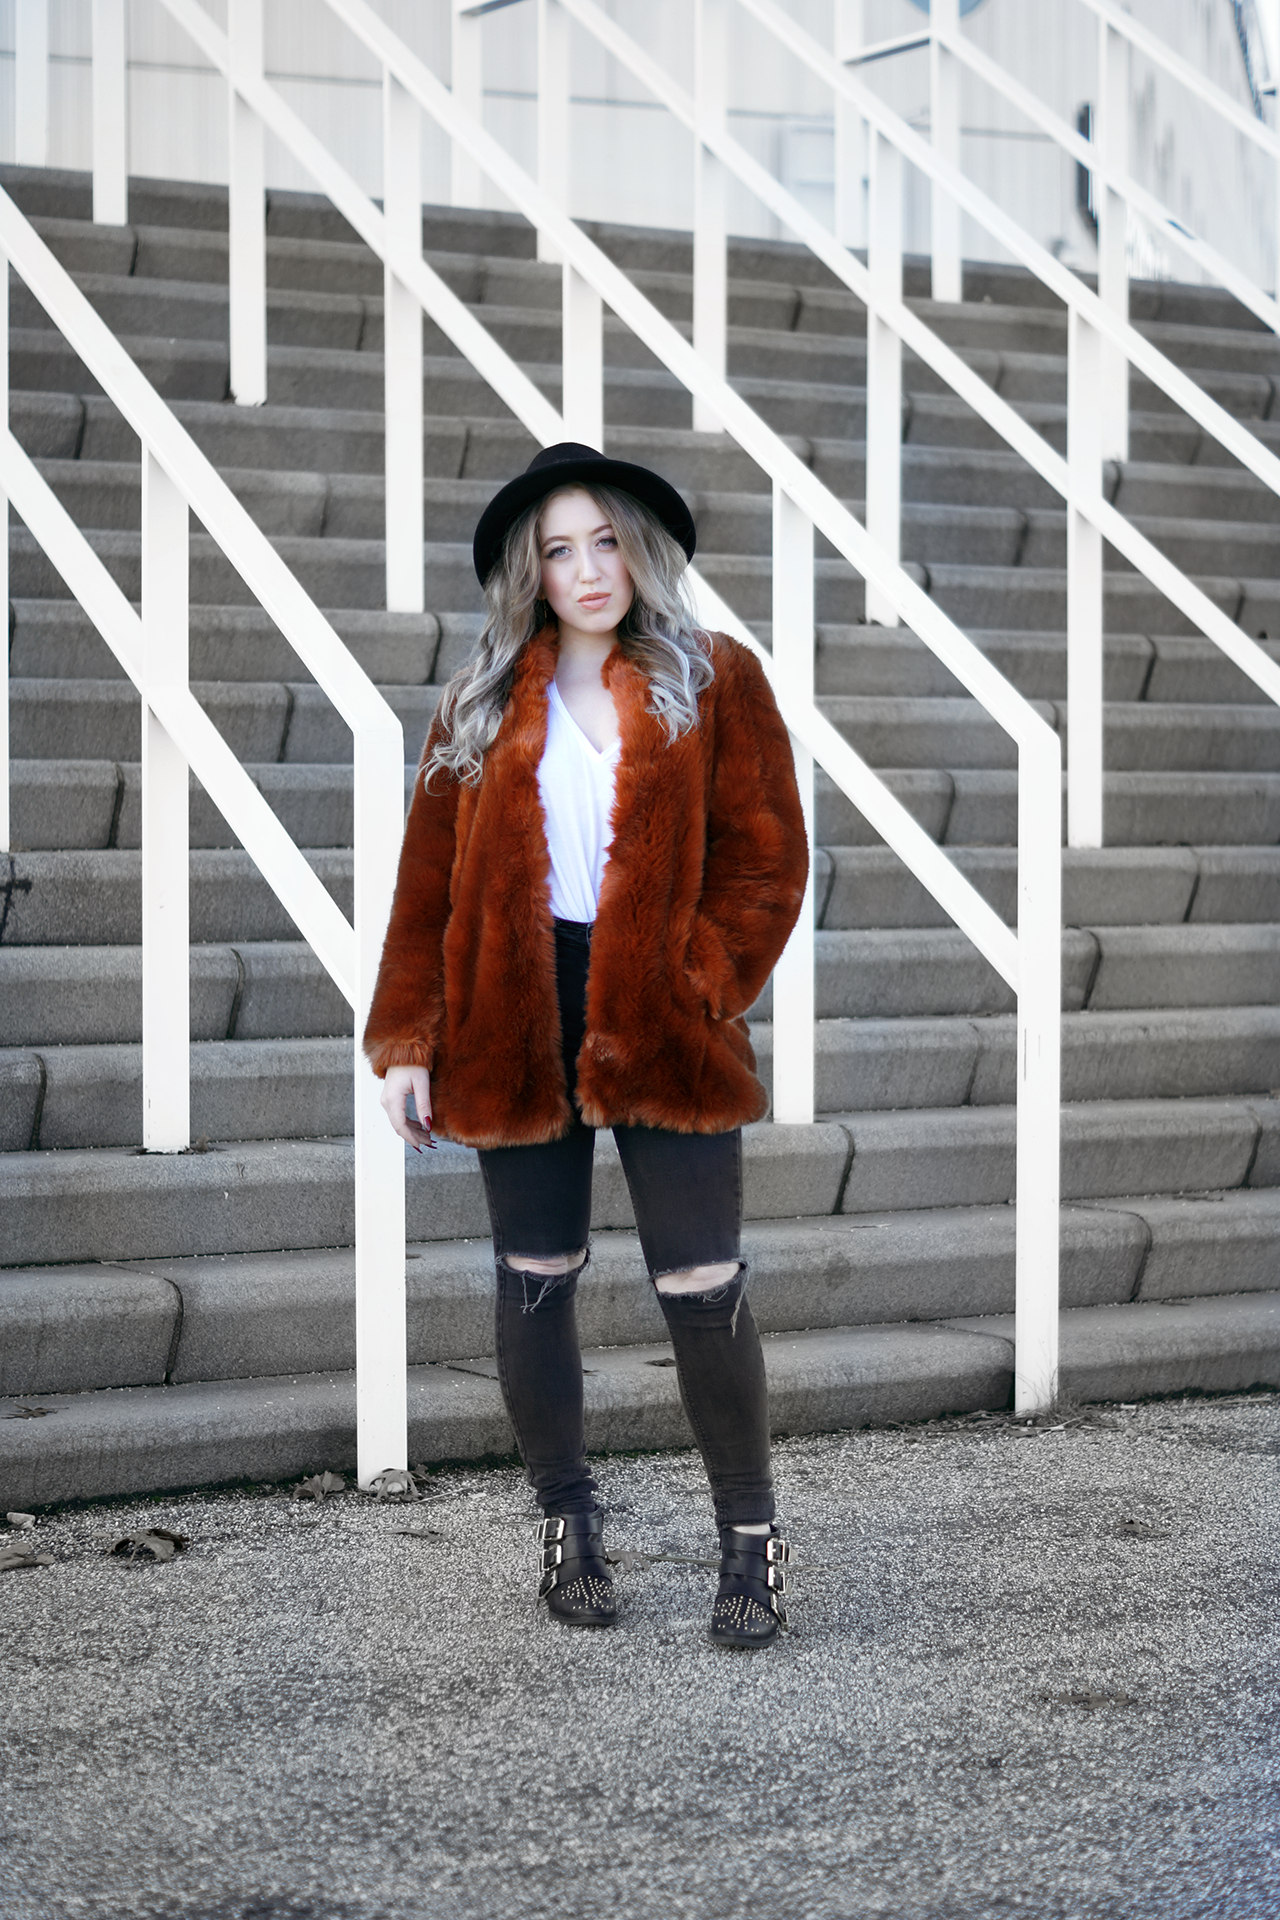 WINTER FASHION GUIDE | How To Style Faux Fur Coats